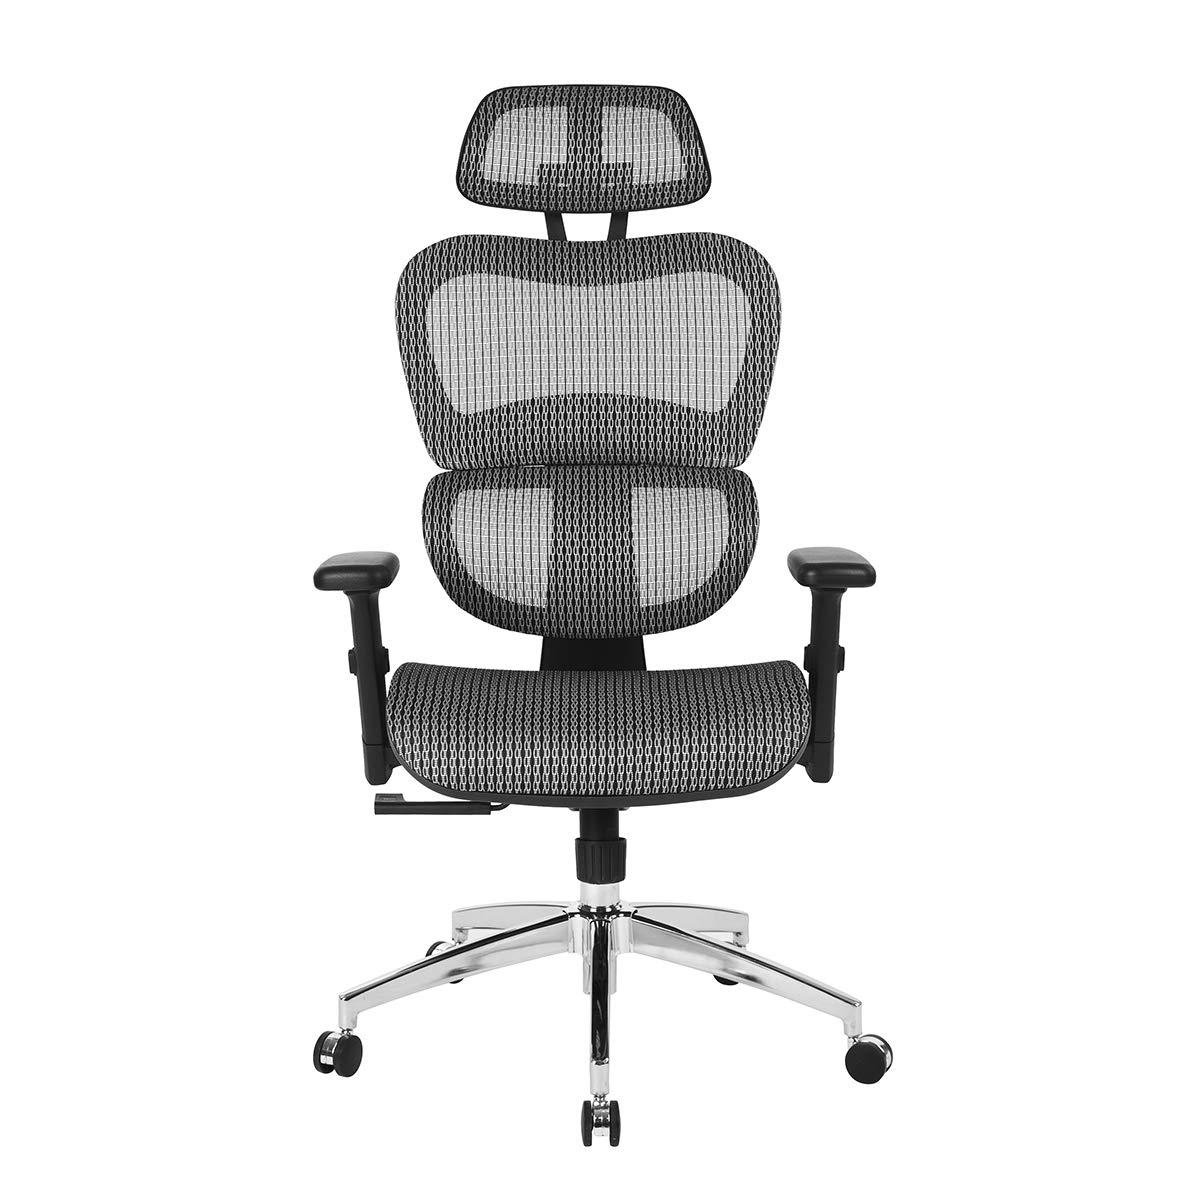 HOMY CASA Mesh Office Chair Ergonomic Gaming Chair Lumbar Support High Back Support Height Adjustable Tiltable Desk Chair with Ajustable Armrest for Home, Office, Dark Grey